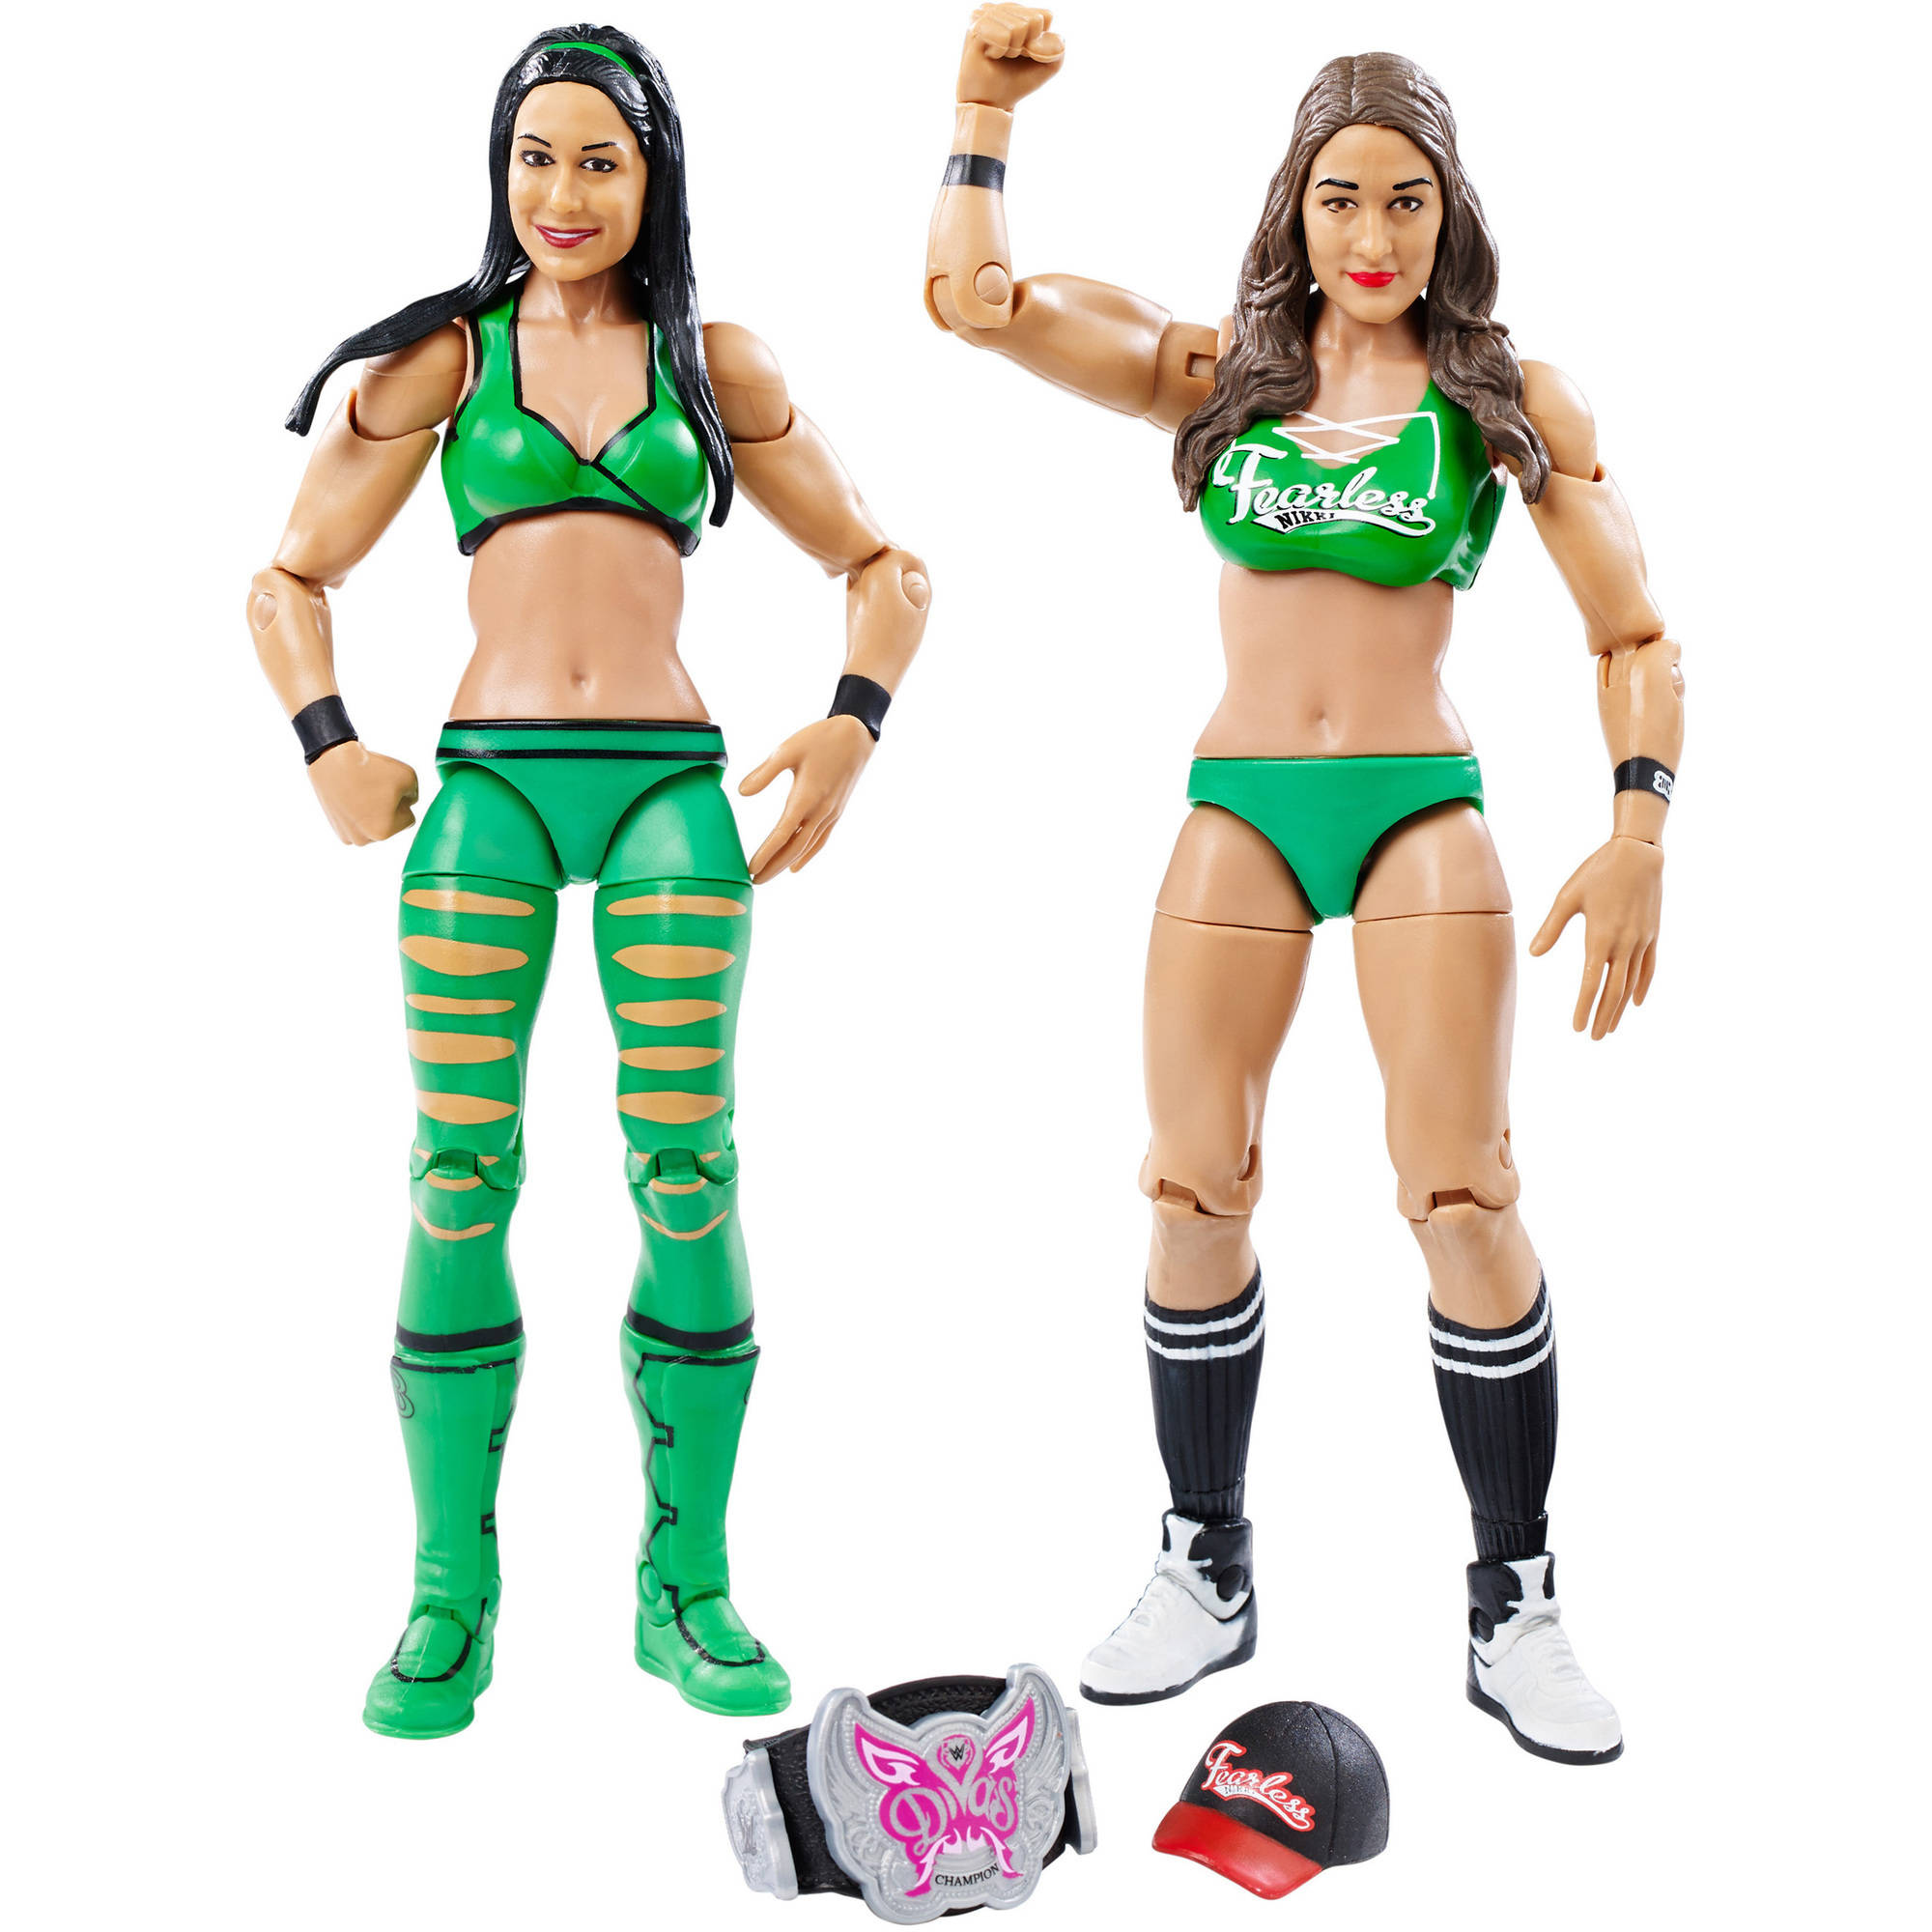 WWE Brie & Nikki Bella Figures 2-Pack